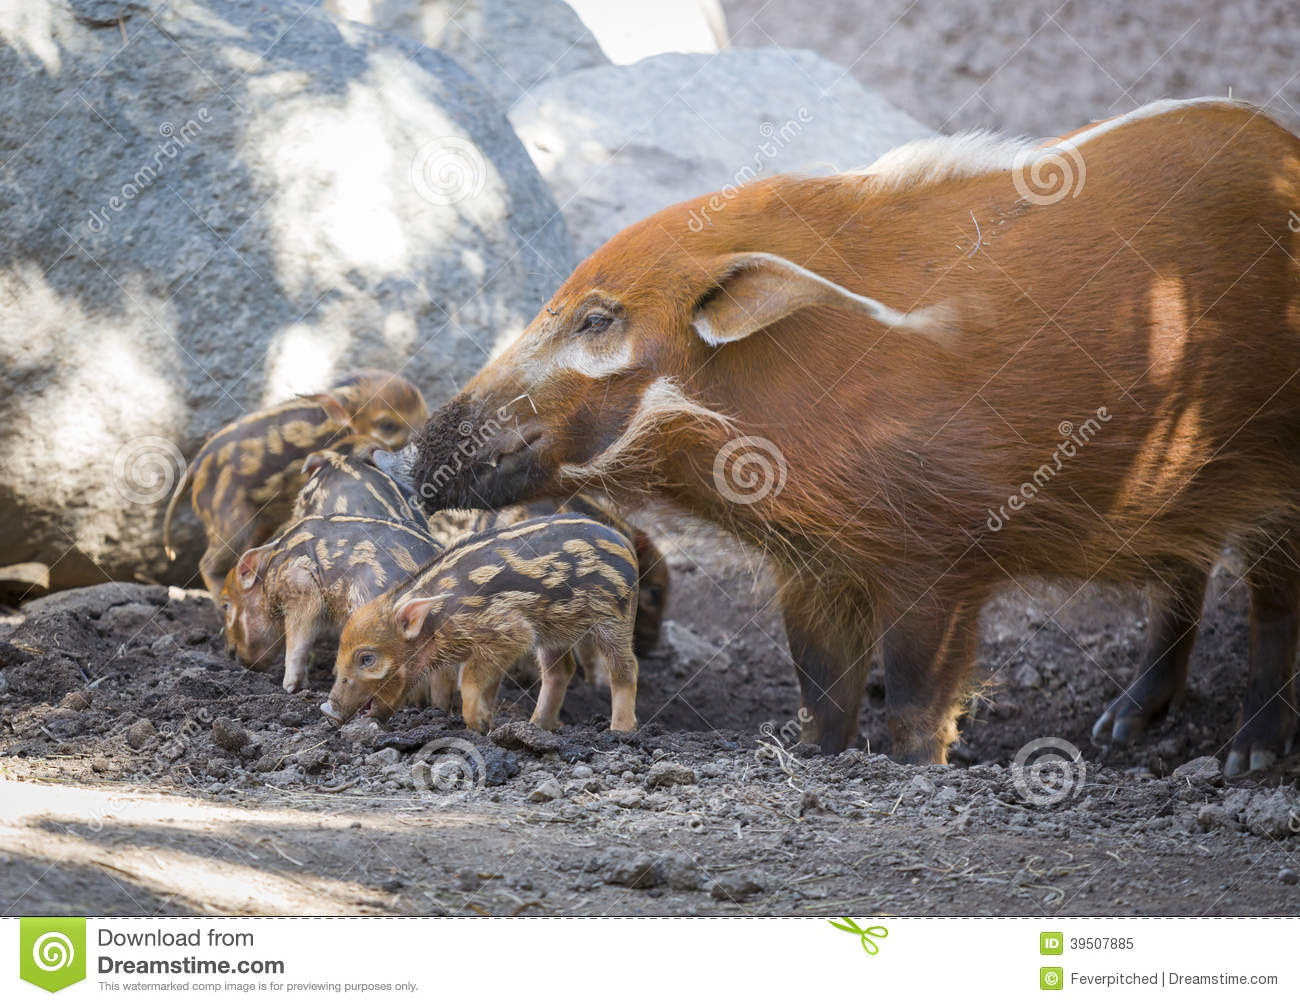 Adorable Baby Visayan Warty Piglets with Mother